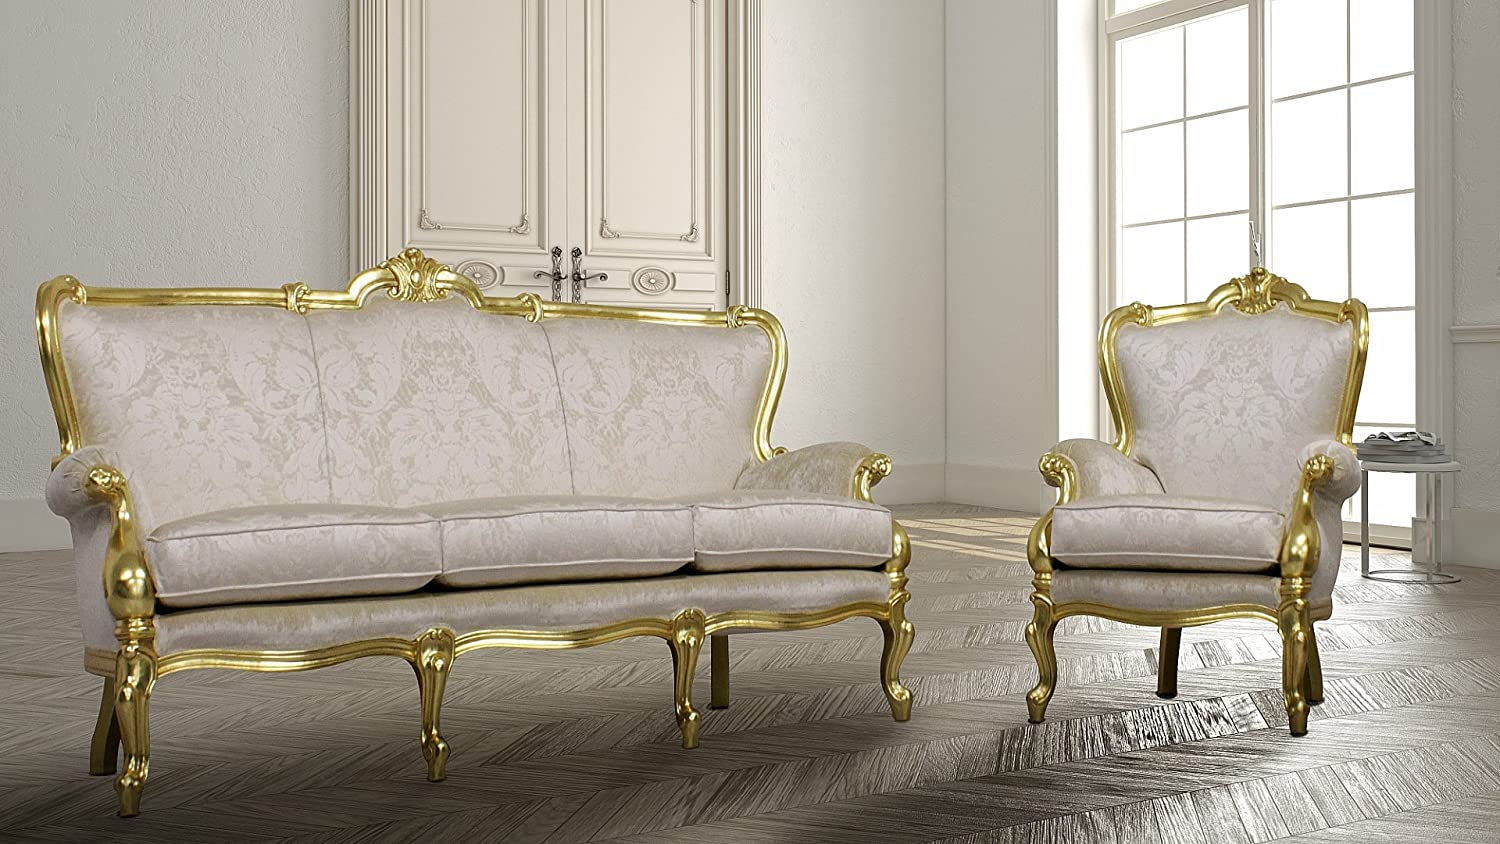 Woodkartindia Luxury Classic Light Baroque Style Wooden Sofa ...